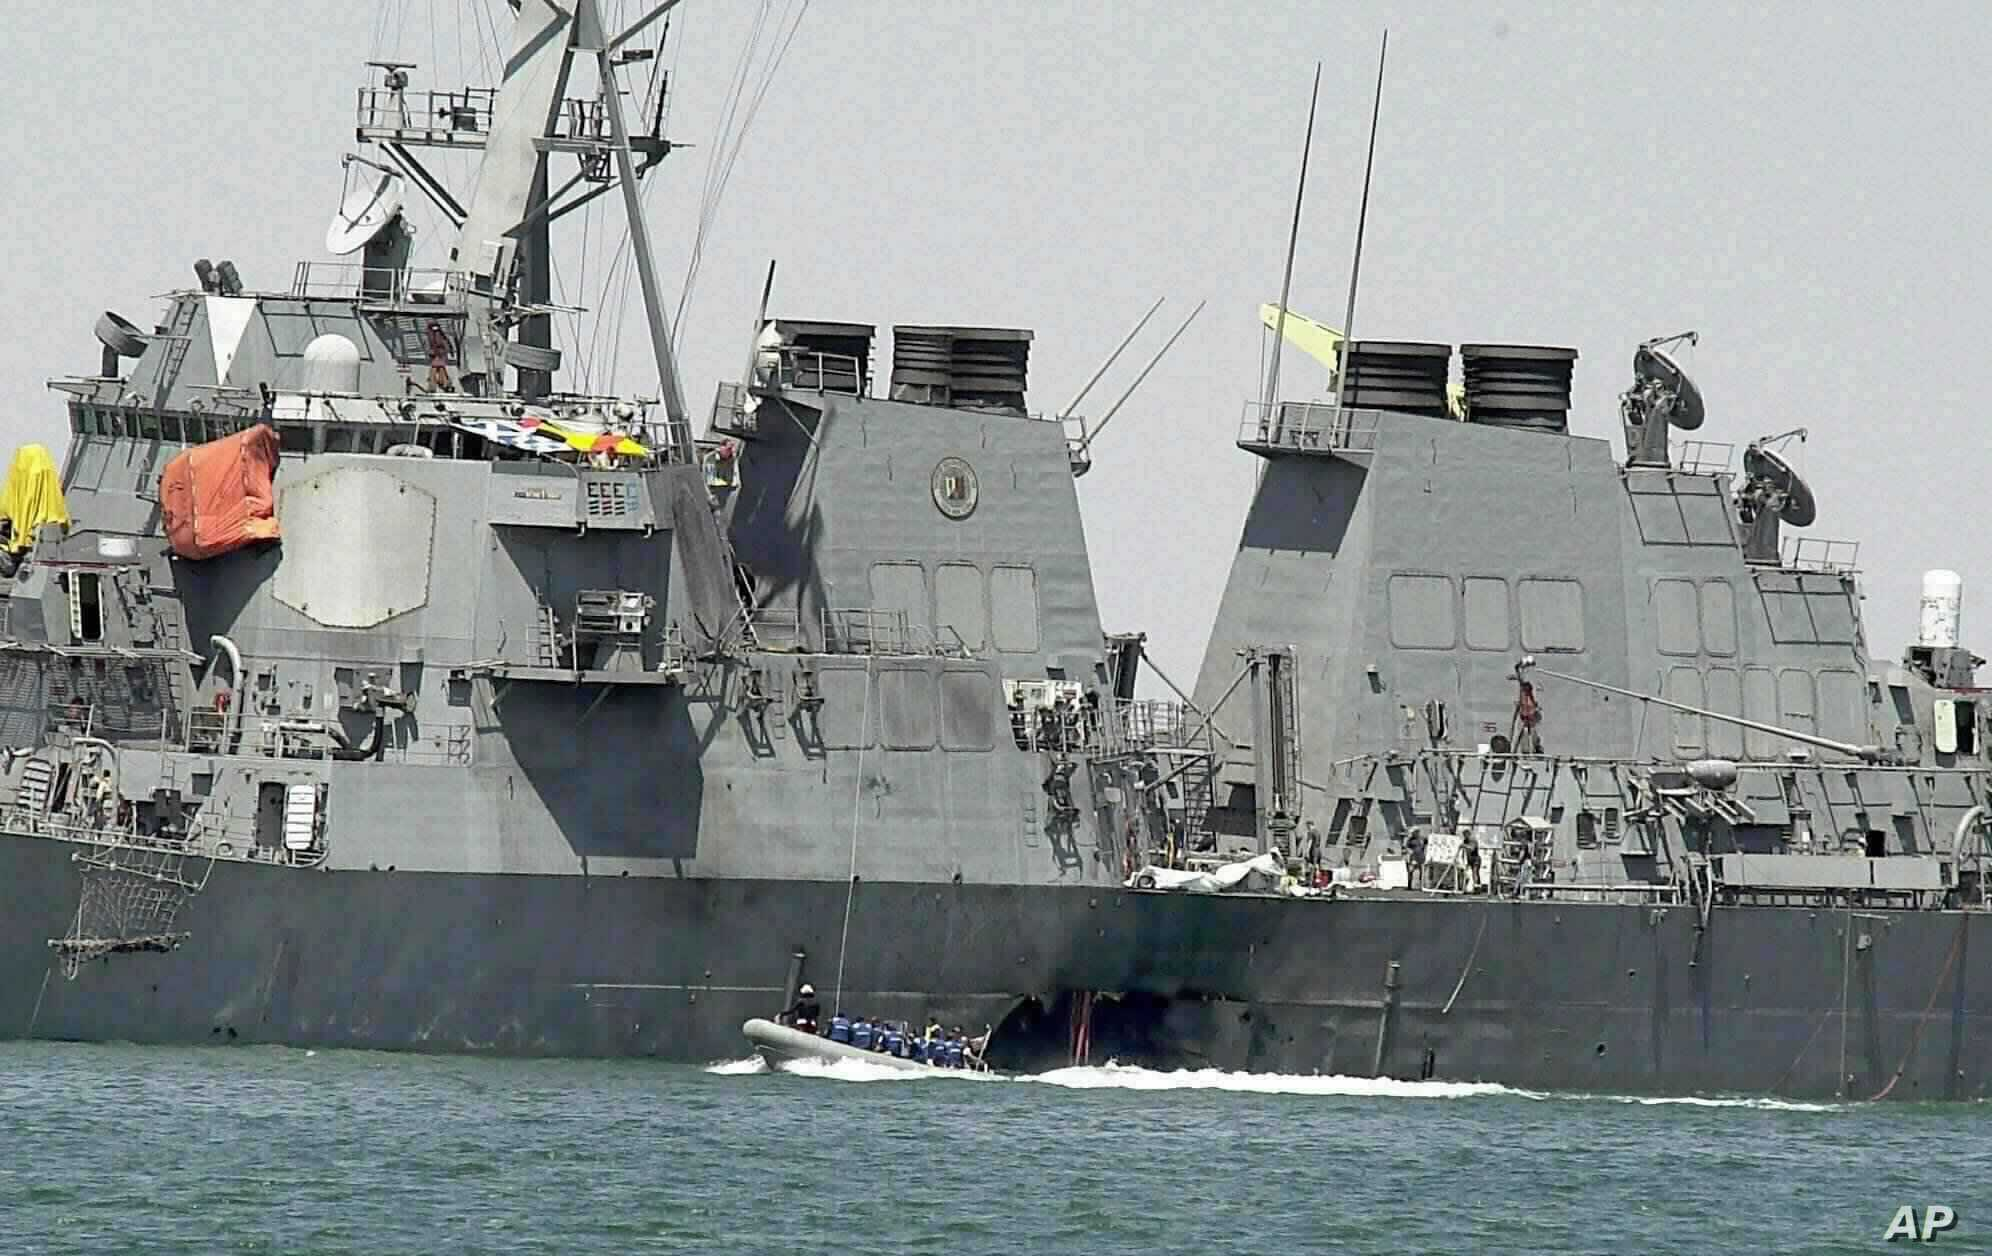 Sudan Reaches Settlement With Victims and Families of USS Cole Attack